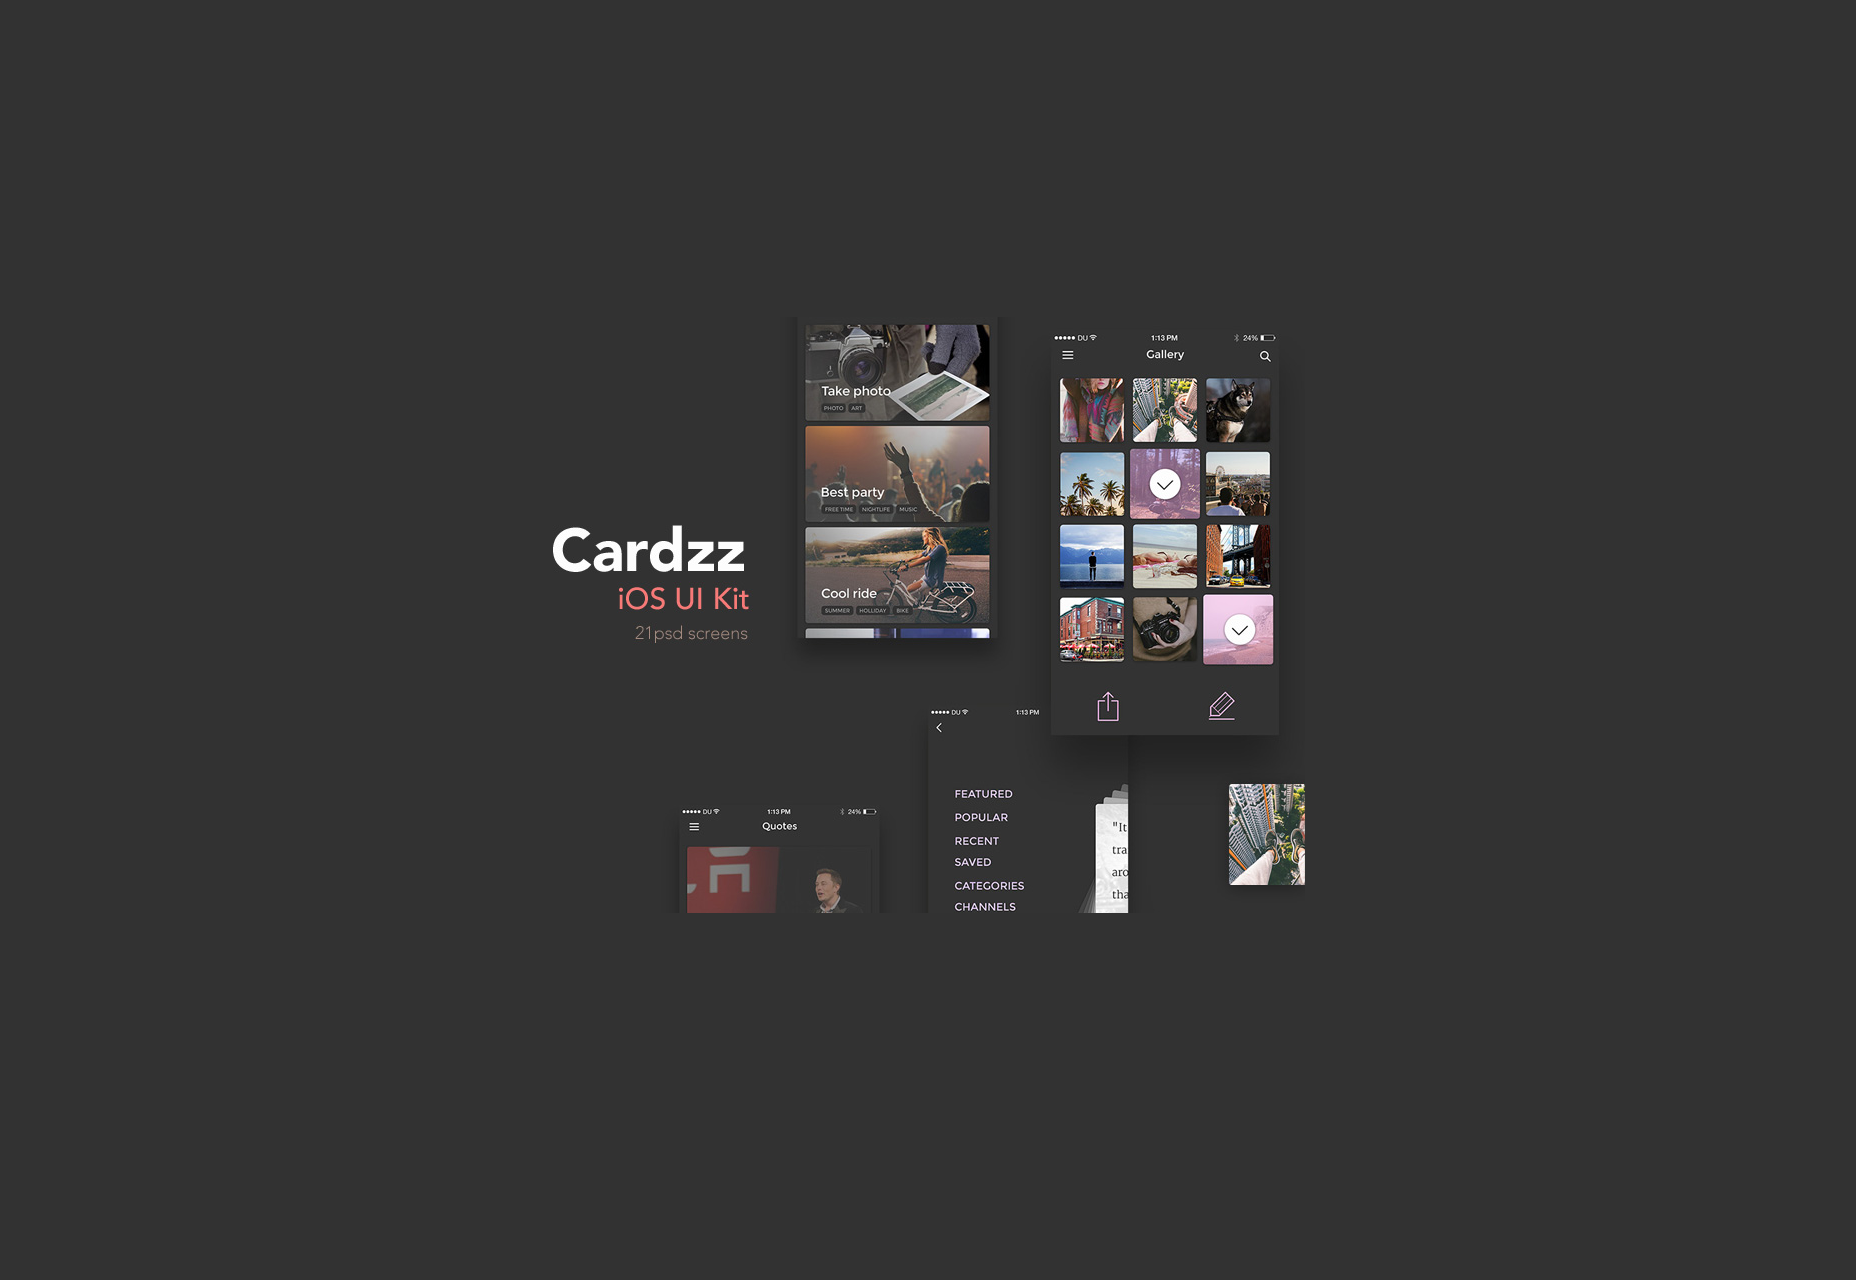 cardzz-dark-schemed-ios-ui-kit